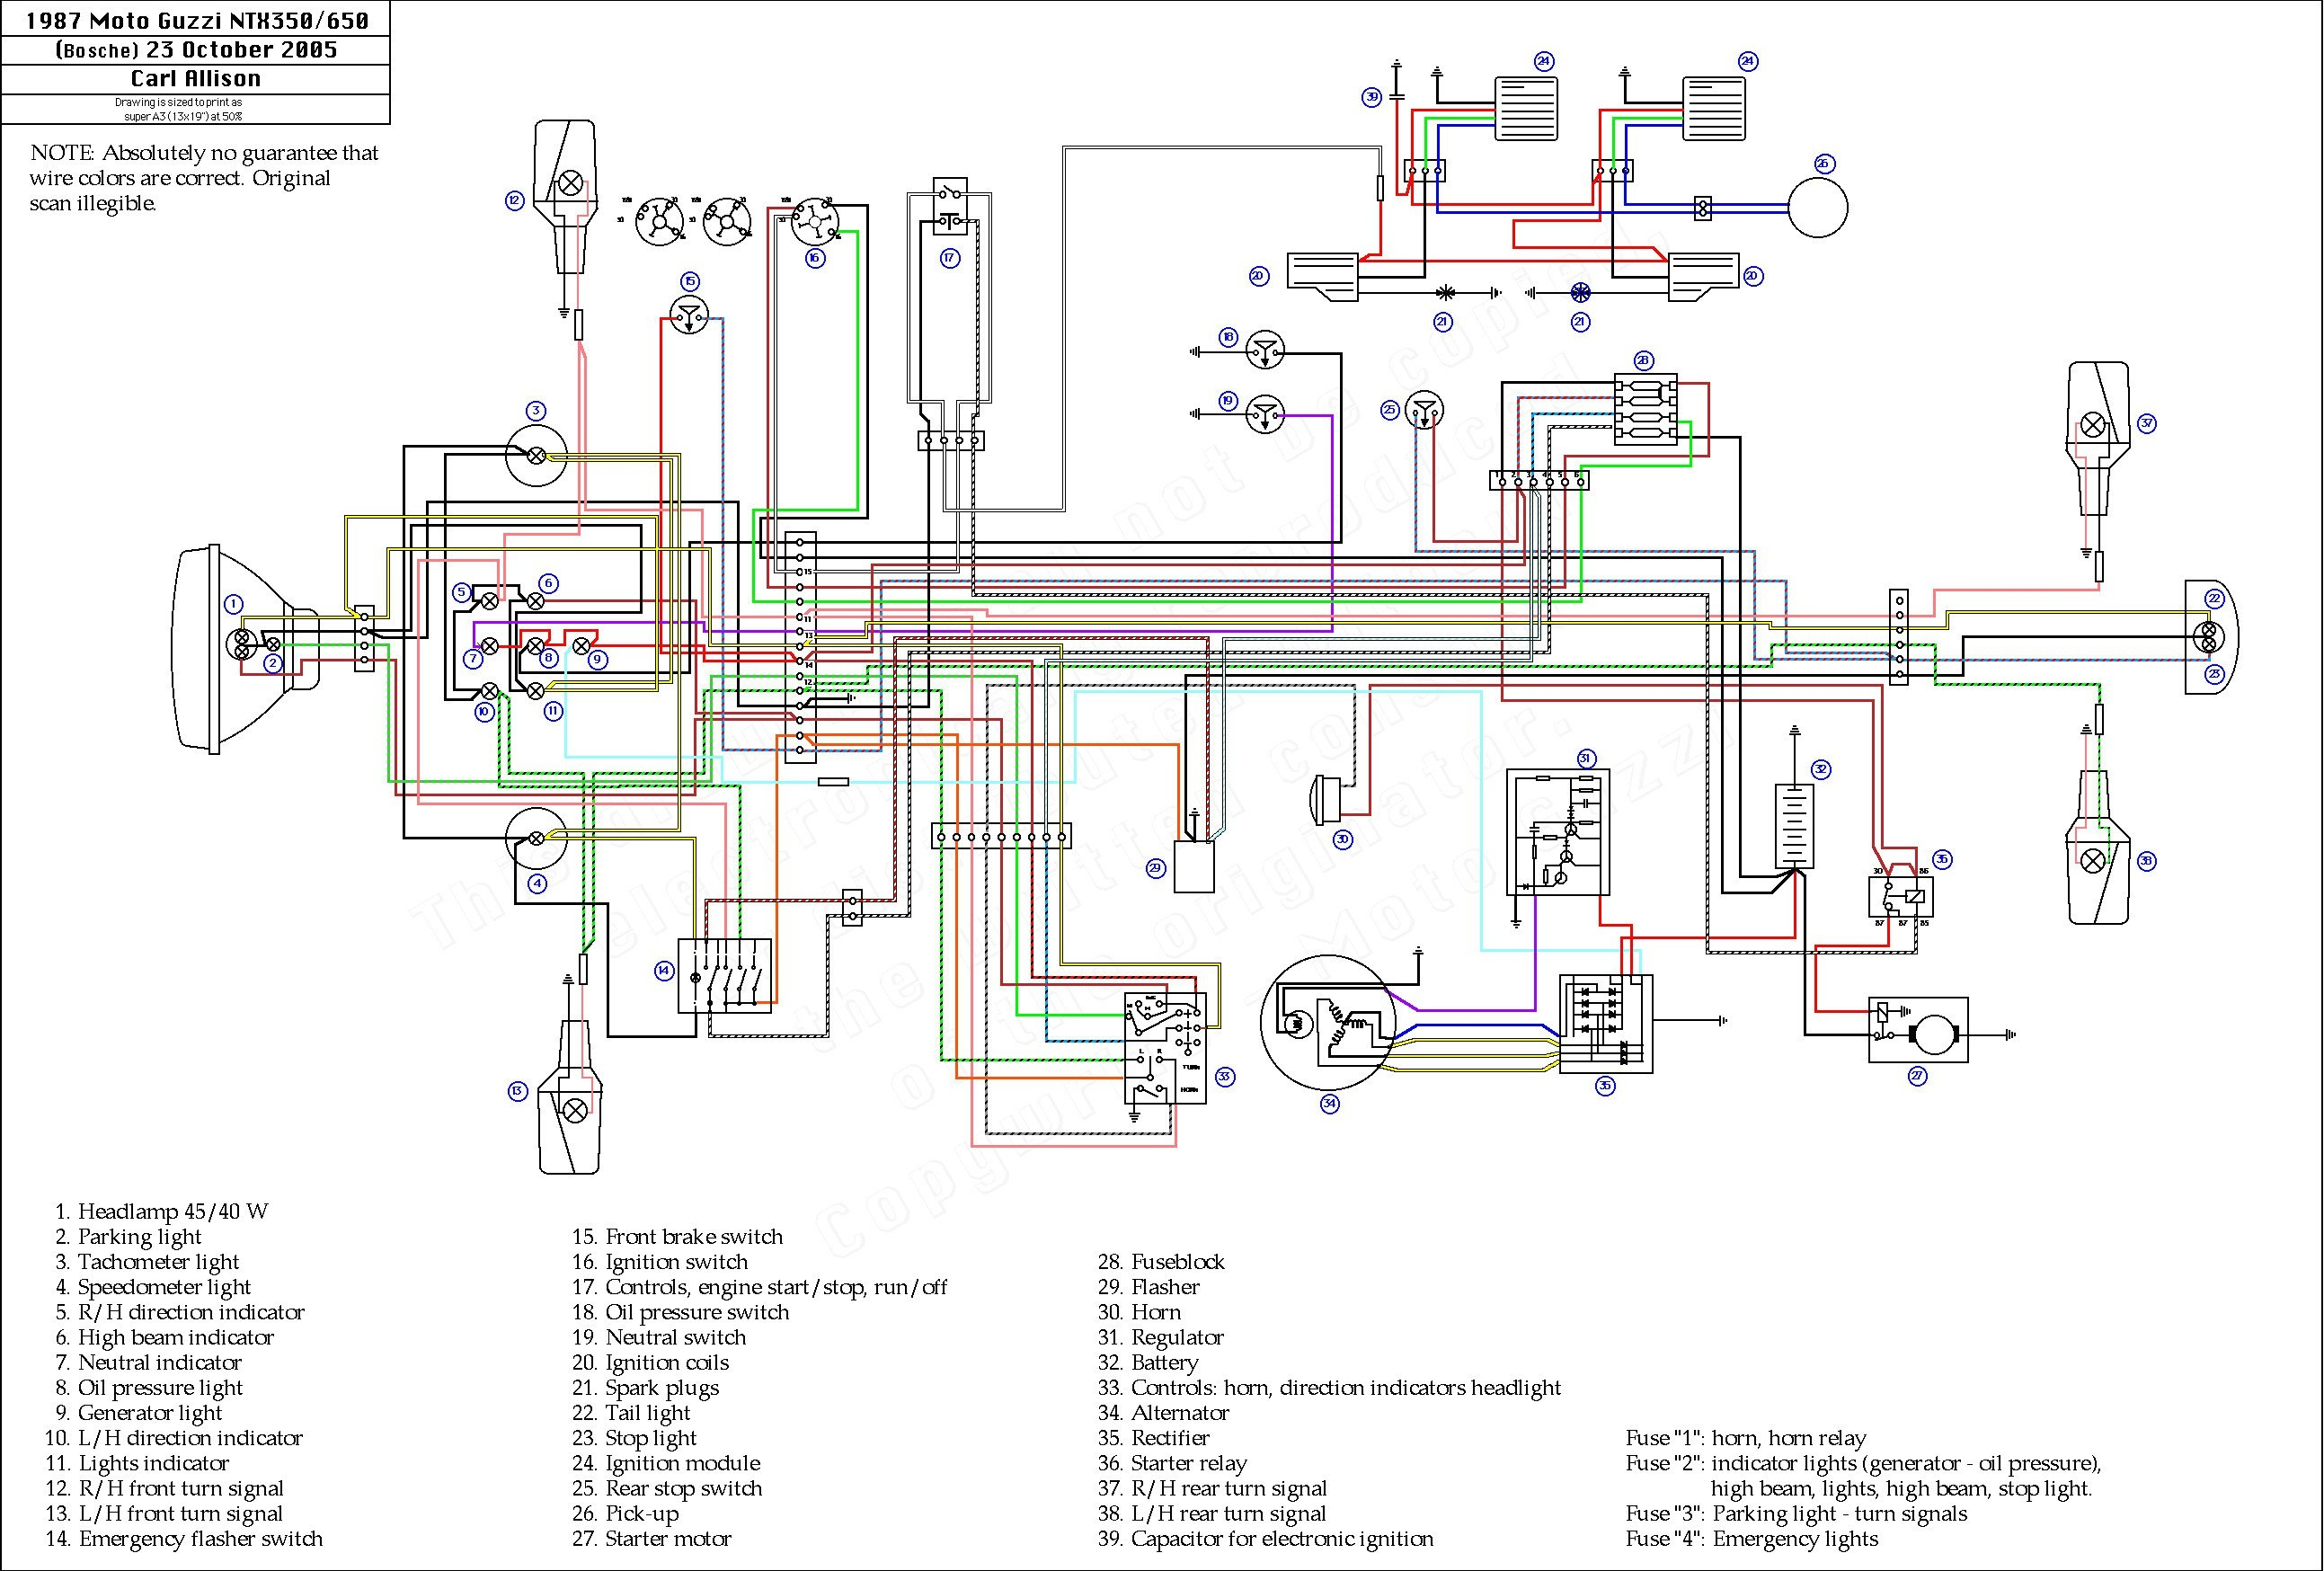 Diagram 2001 R1 Tach Wiring Diagram Full Version Hd Quality Wiring Diagram Forexdiagrams Arte Viaggi It